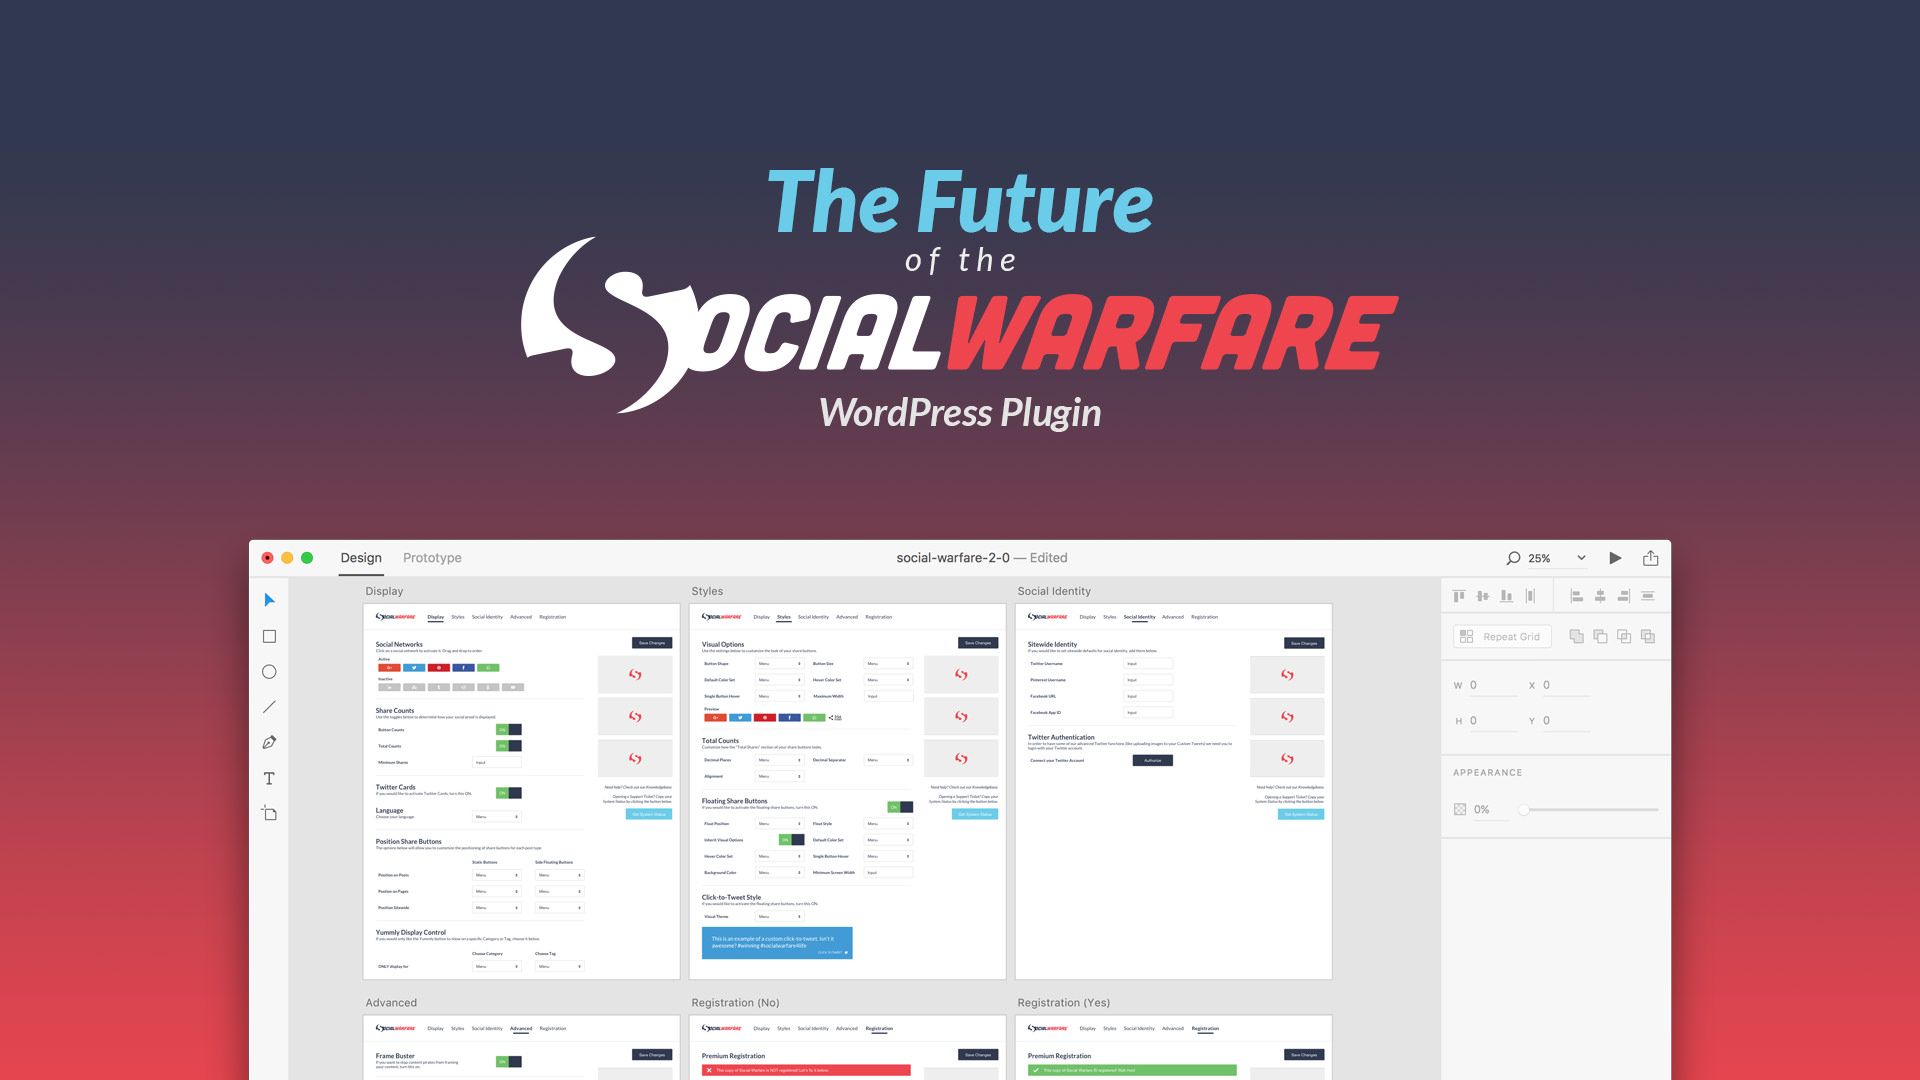 The Future of the Social Warfare WordPress Plugin